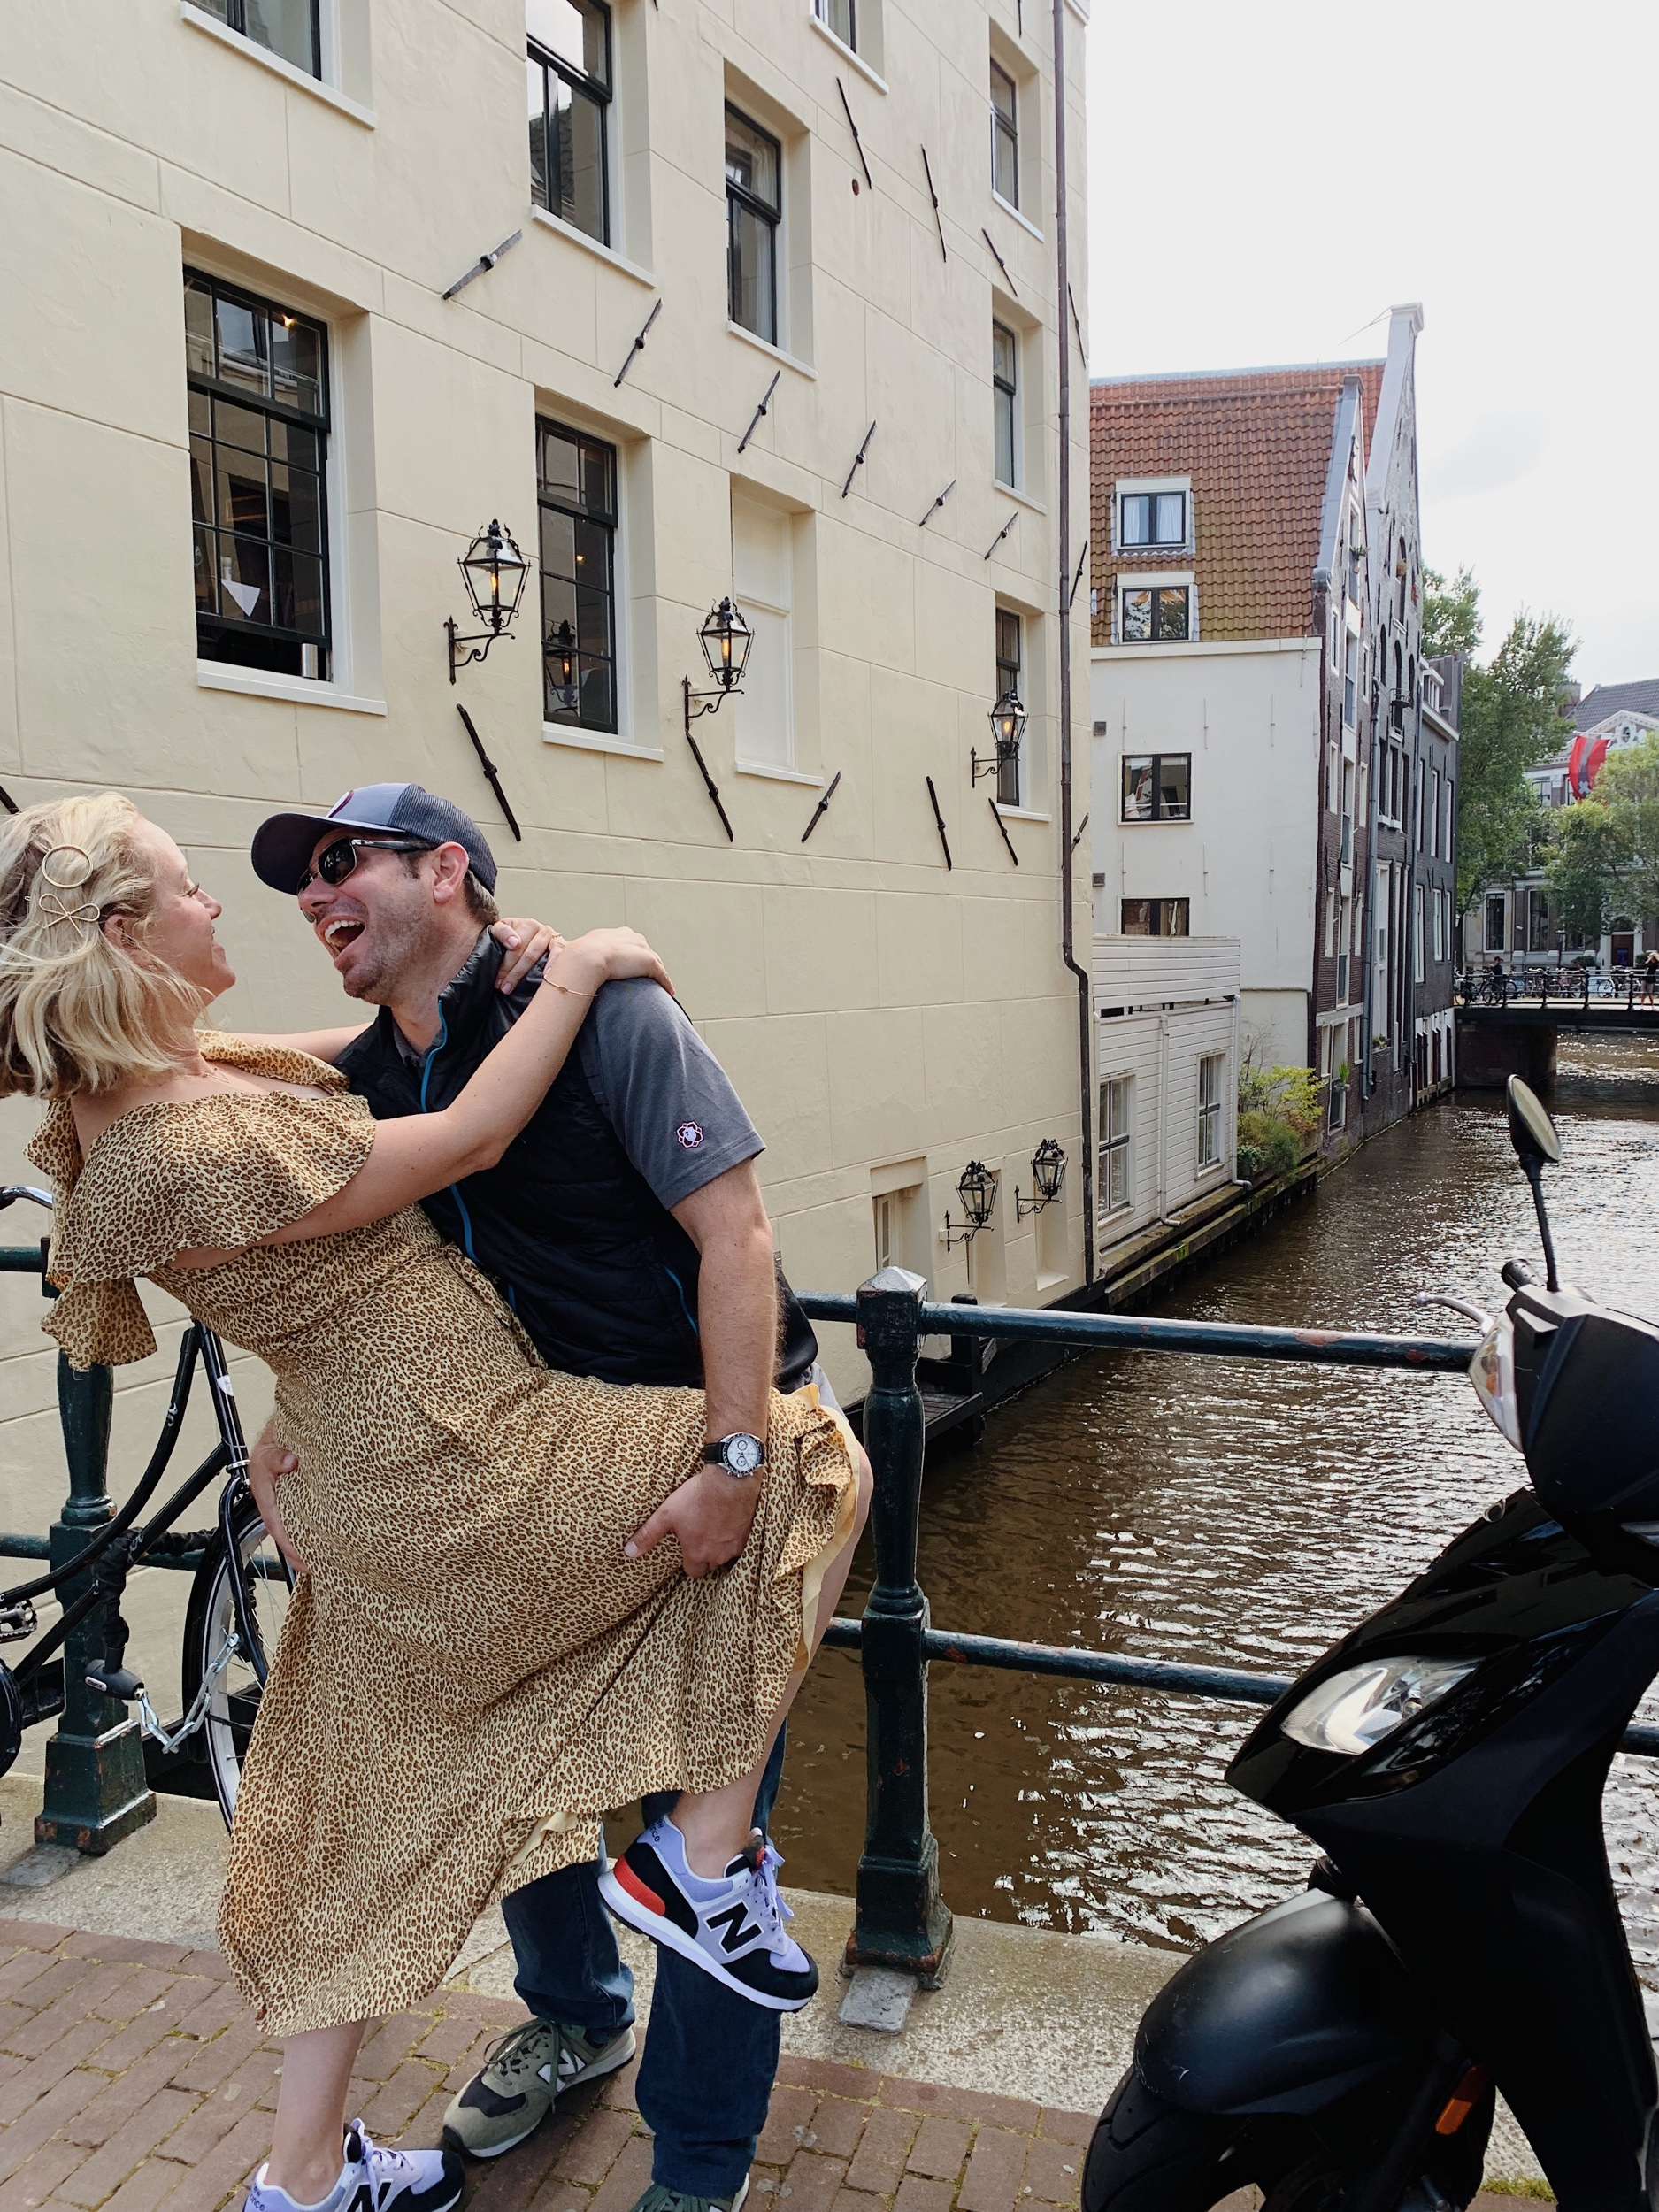 Amsterdam is for lovers too even with kids in the background:))))